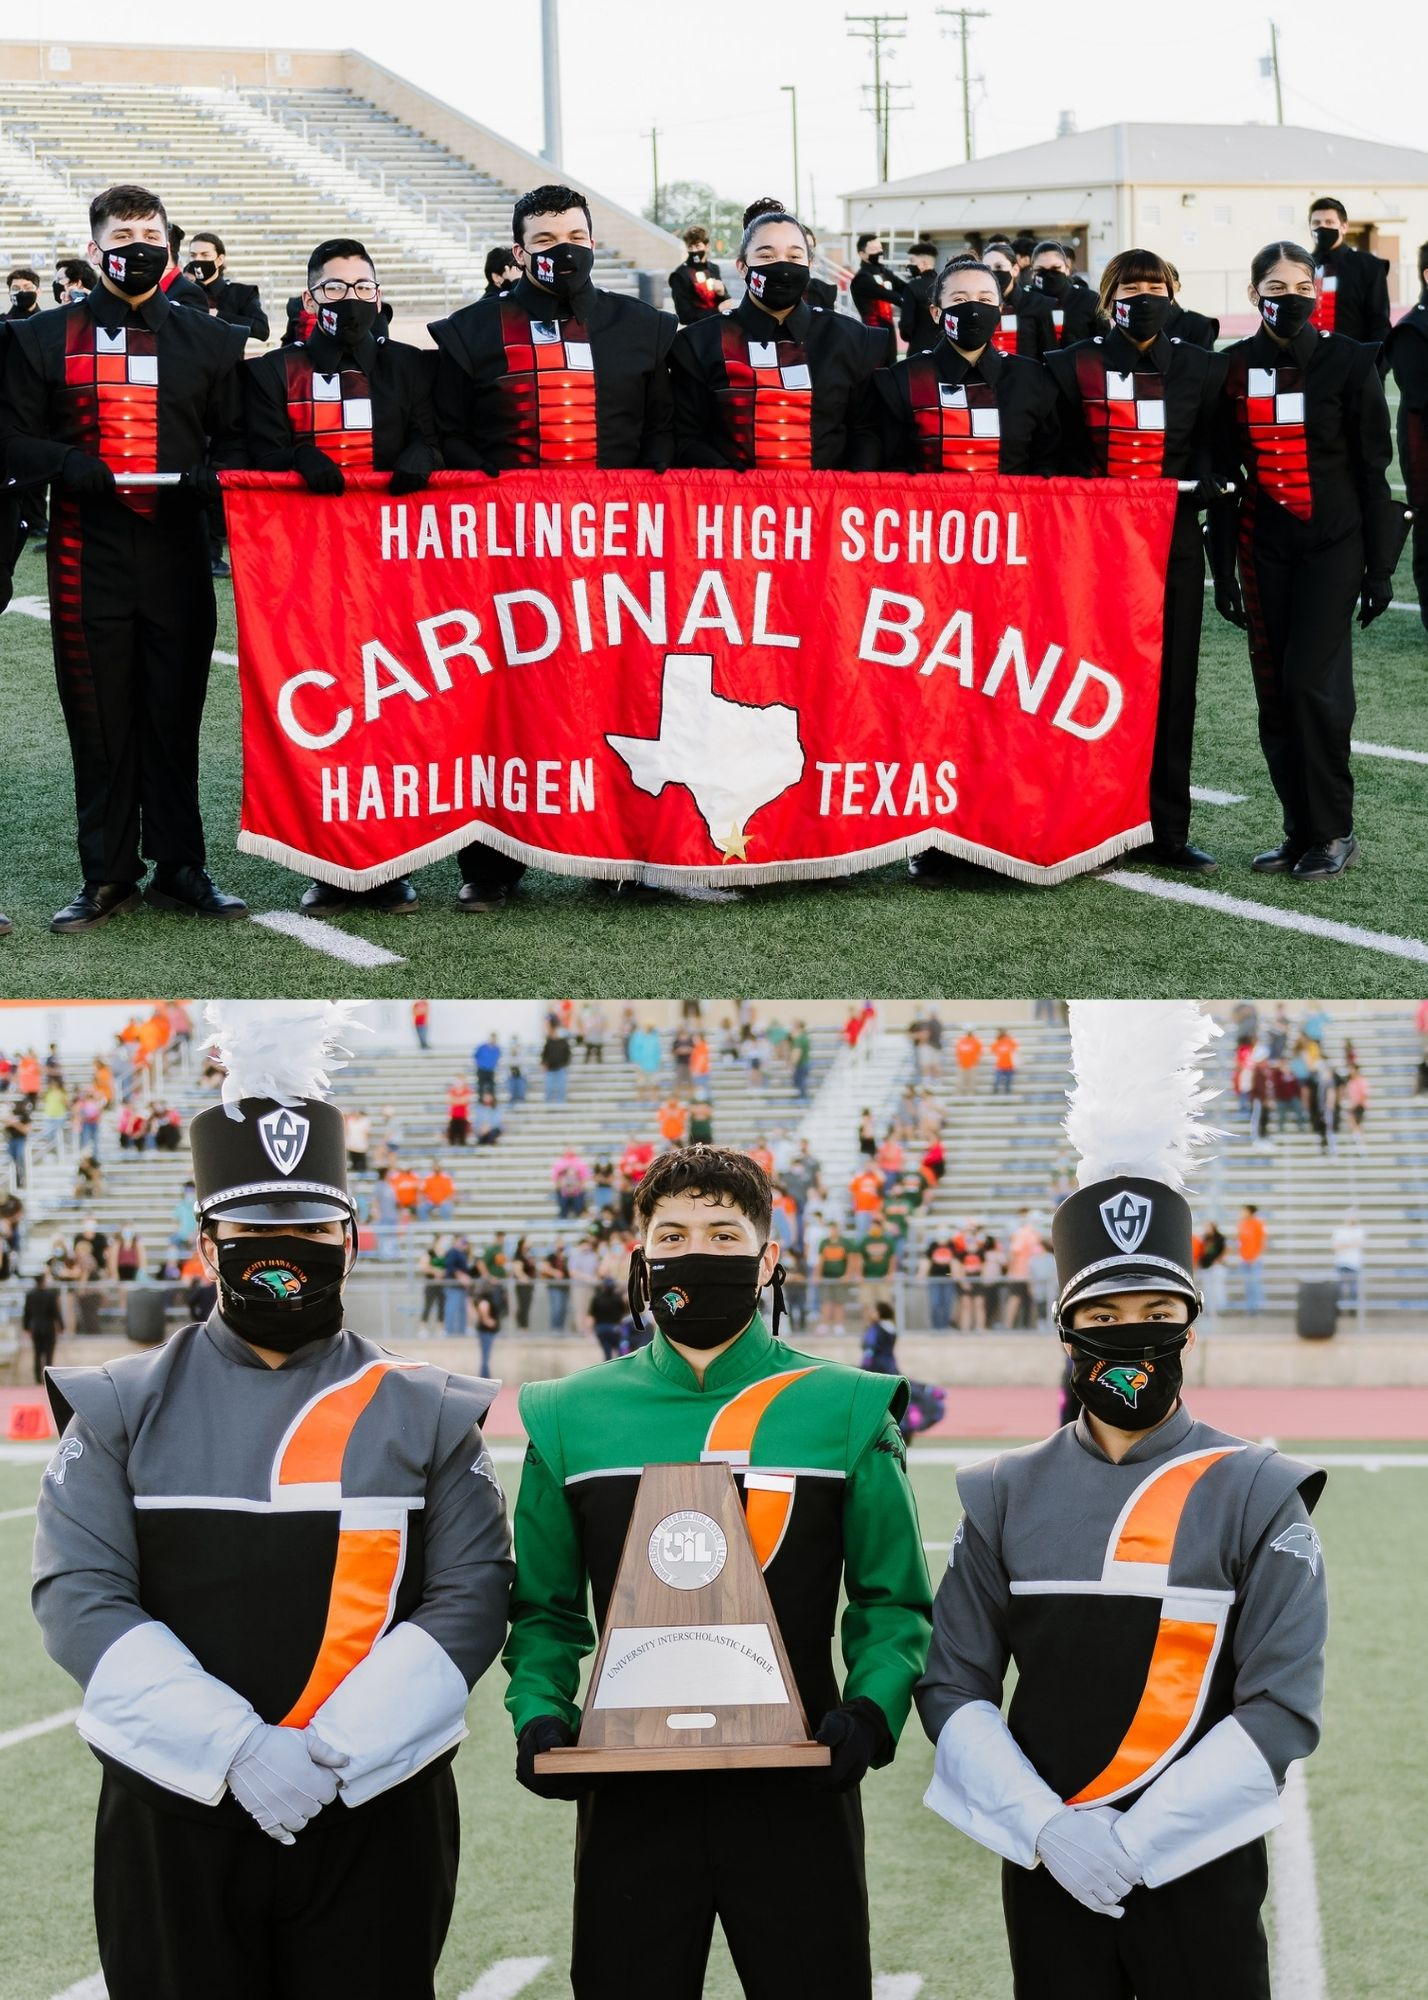 The Big Red and Mighty Hawk bands advance to UIL State Marching Band Championships